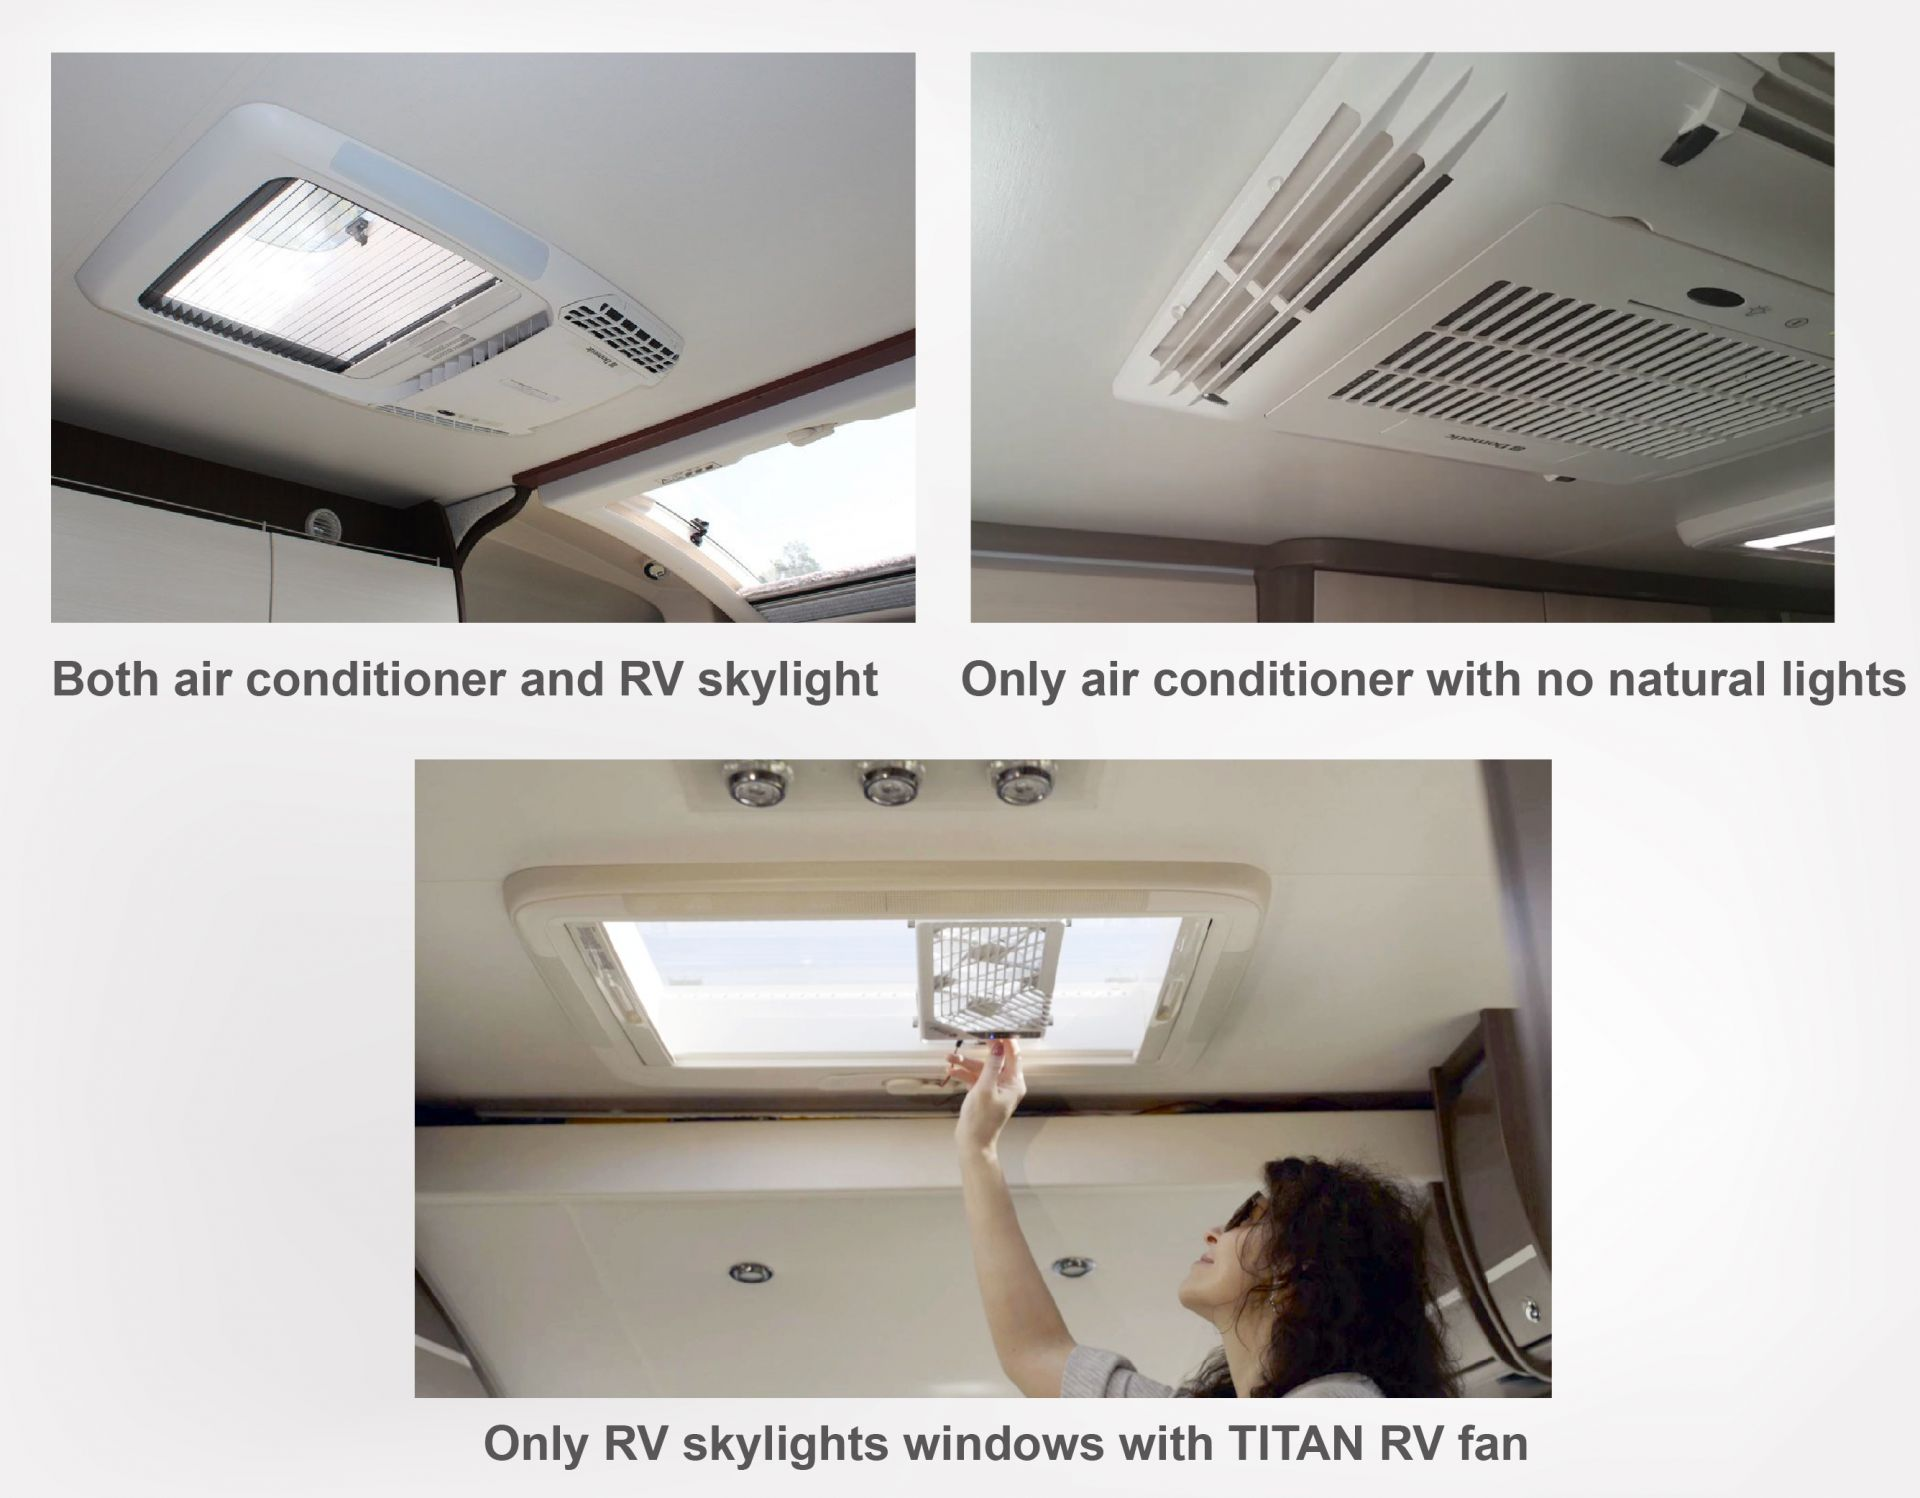 The problem of RV skylights or RV roof window